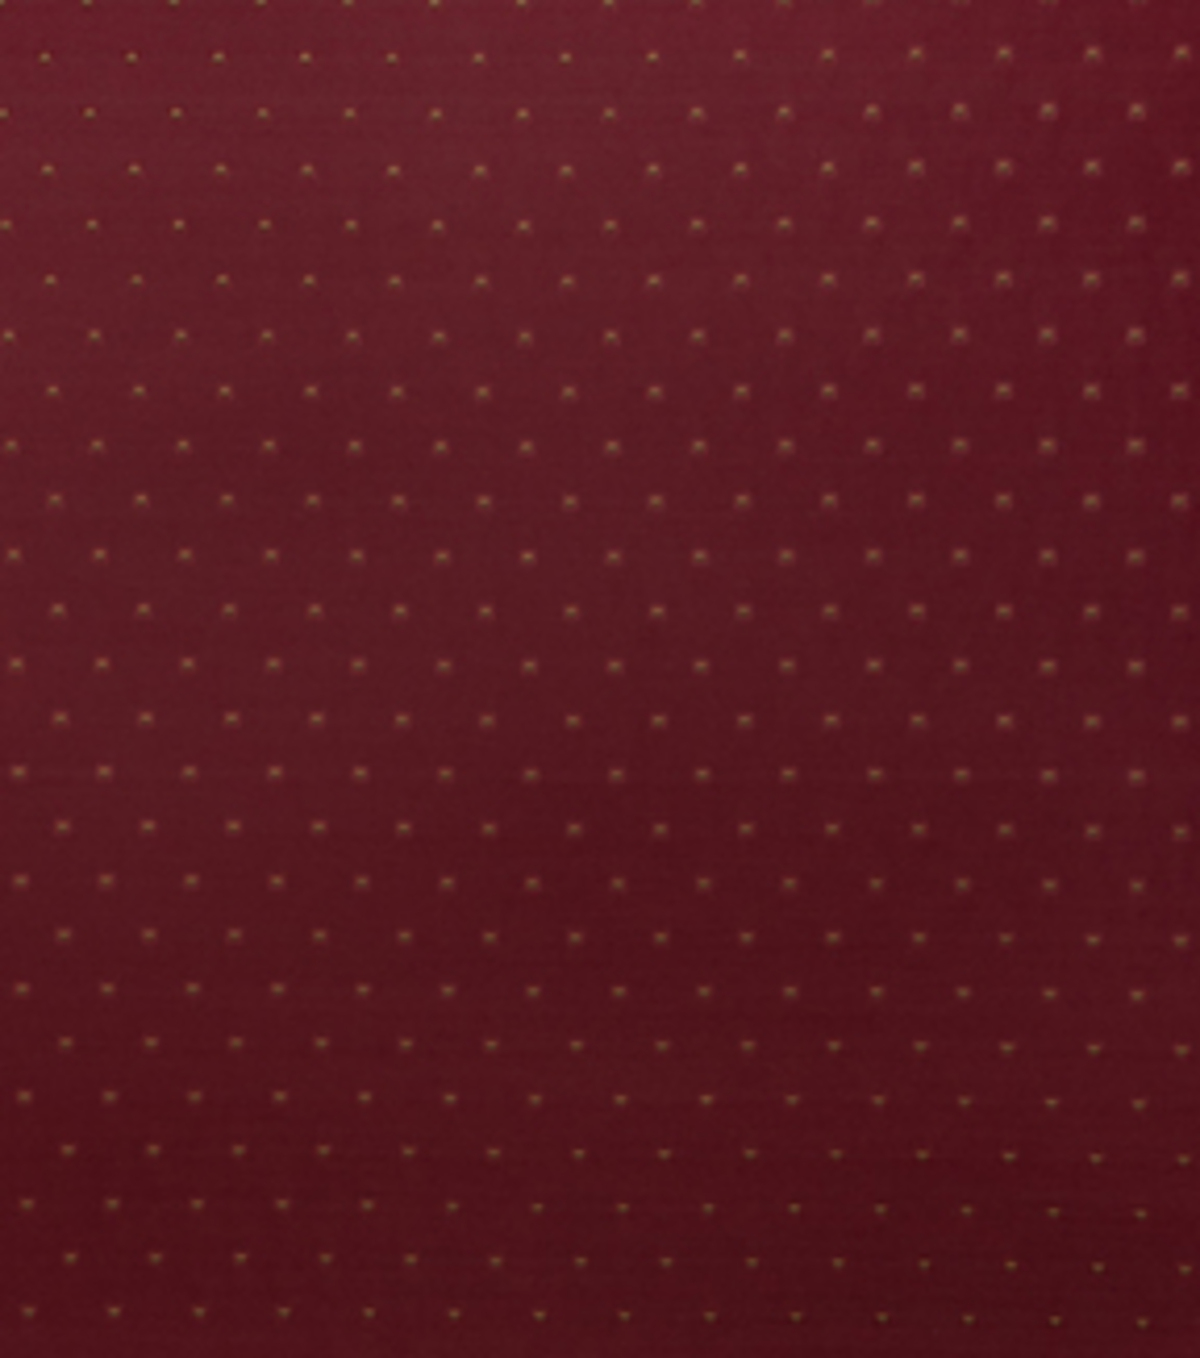 Home Decor 8\u0022x8\u0022 Fabric Swatch-Eaton Square Thornberry Cranberry